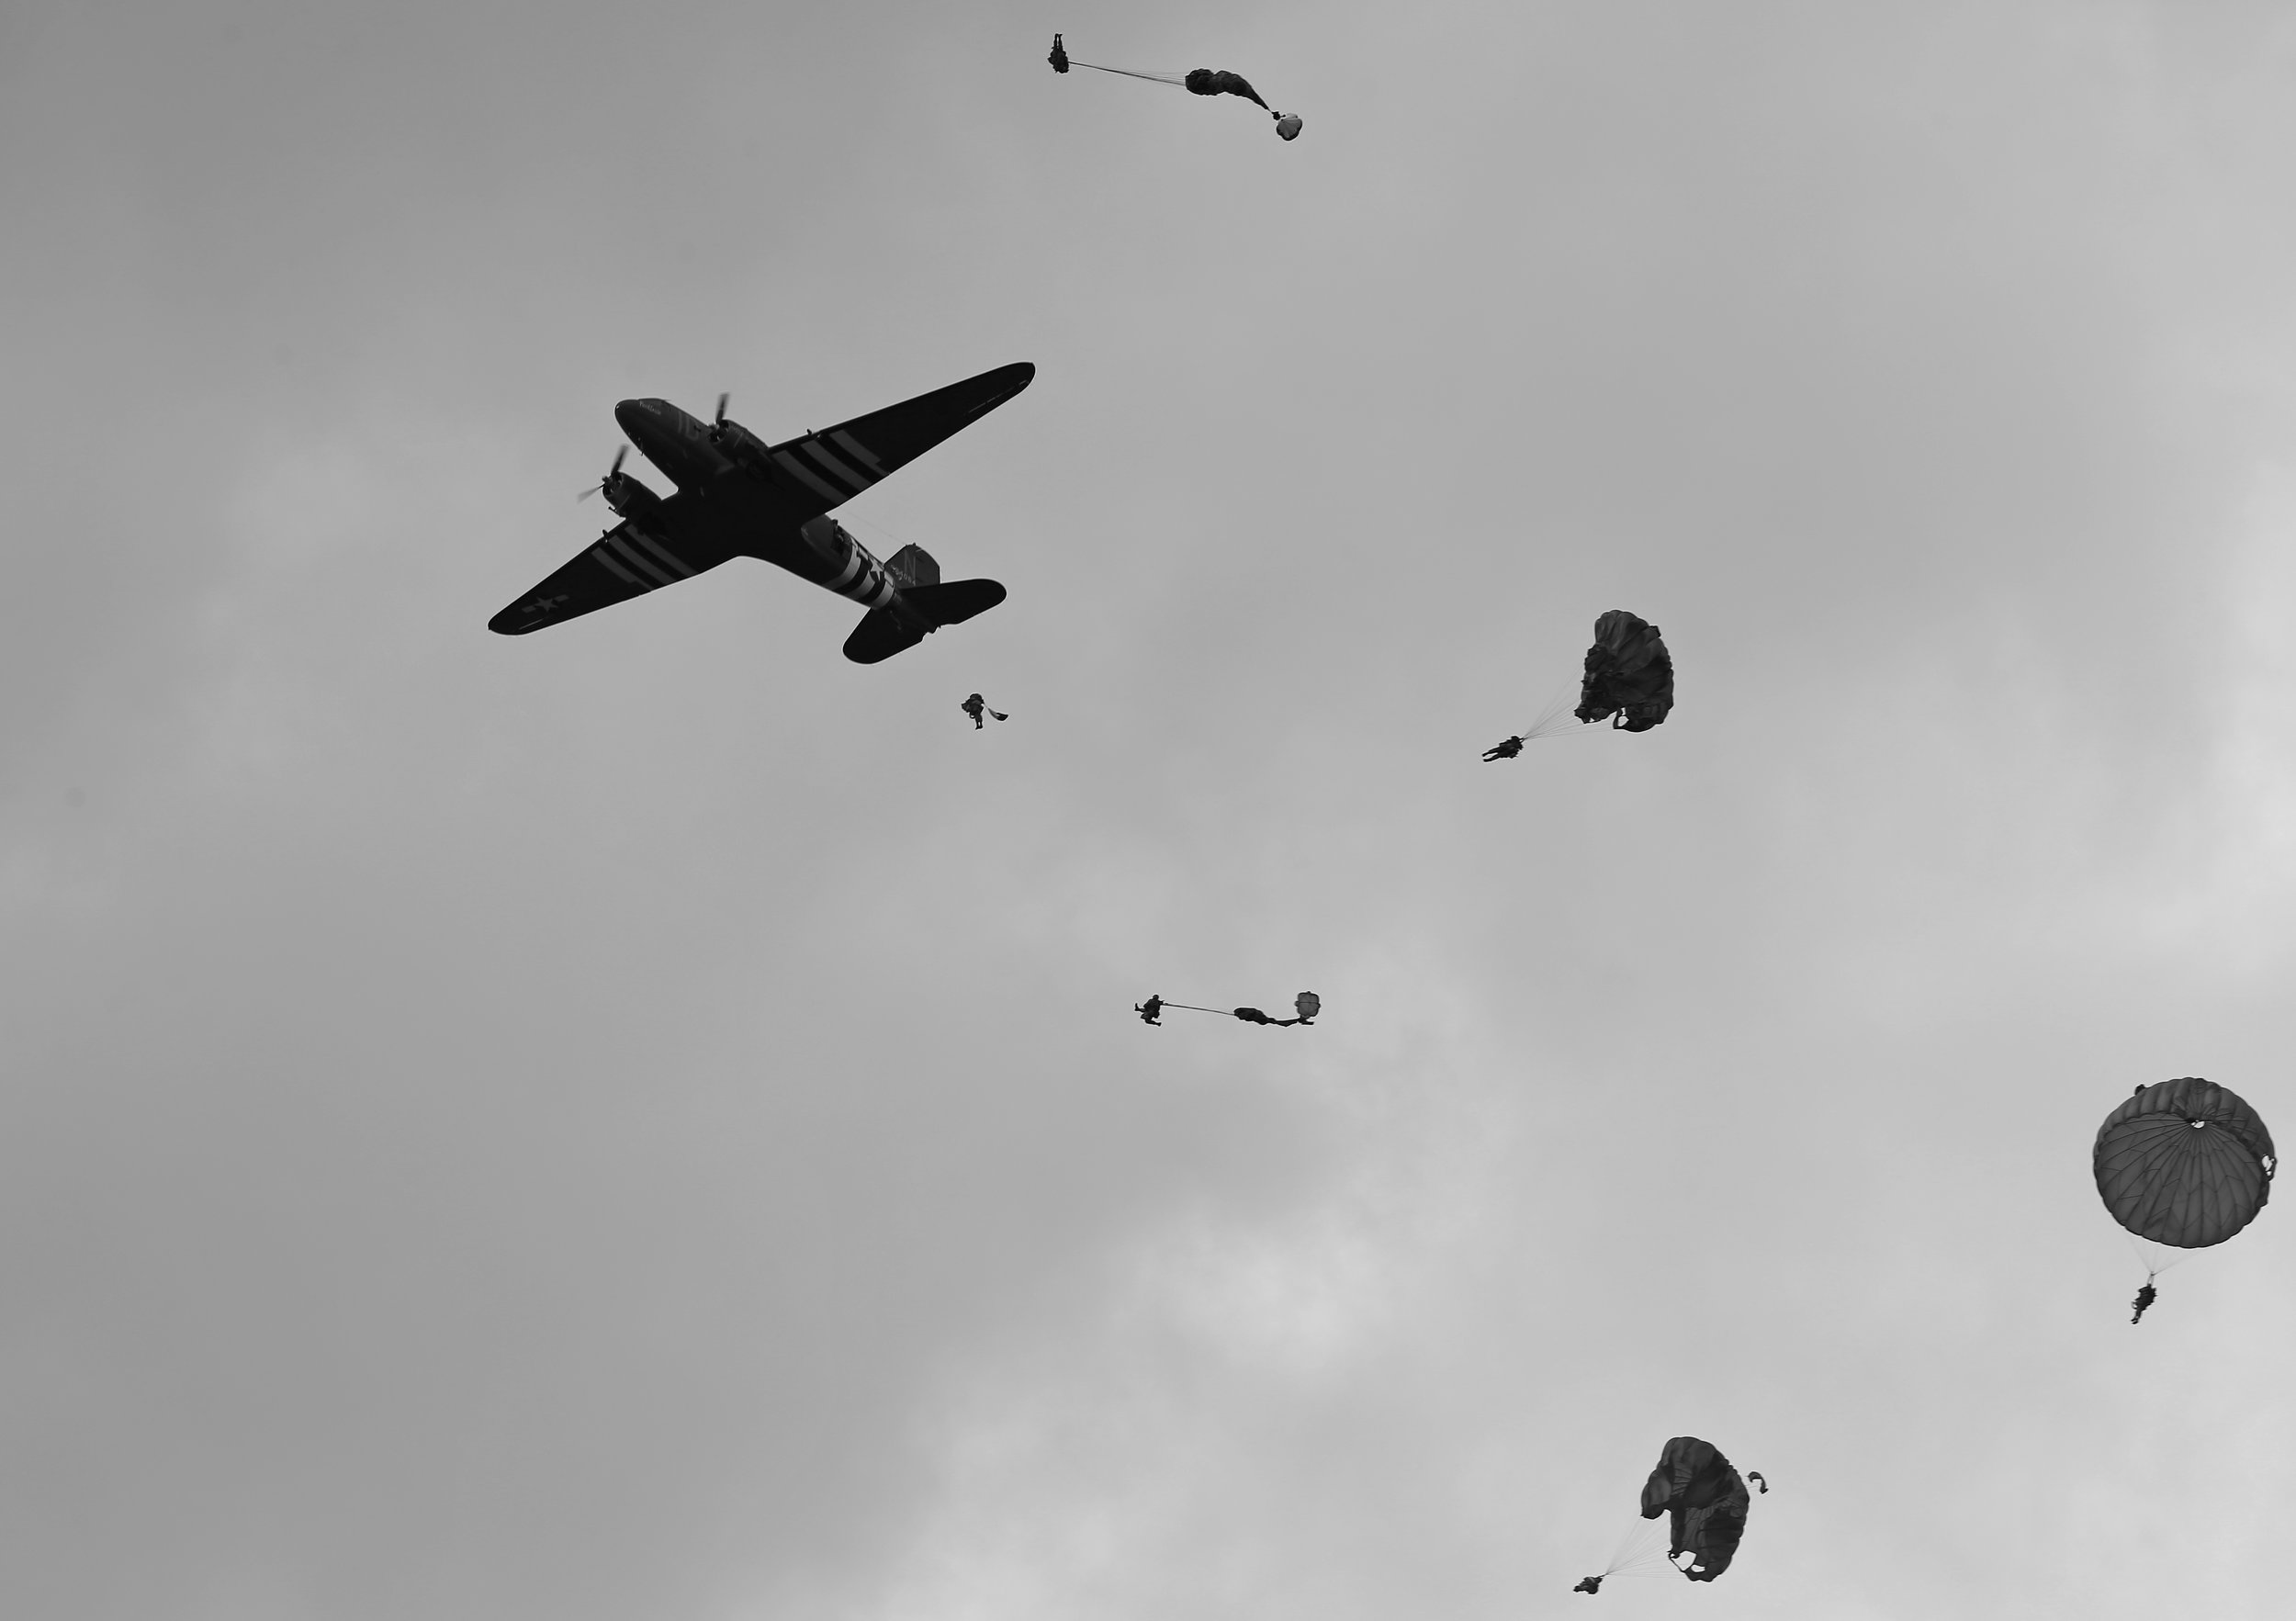 Jumping from a Dakota over Sannerville,Normandy. 5th June 2019. Photo: Peter Hampson.